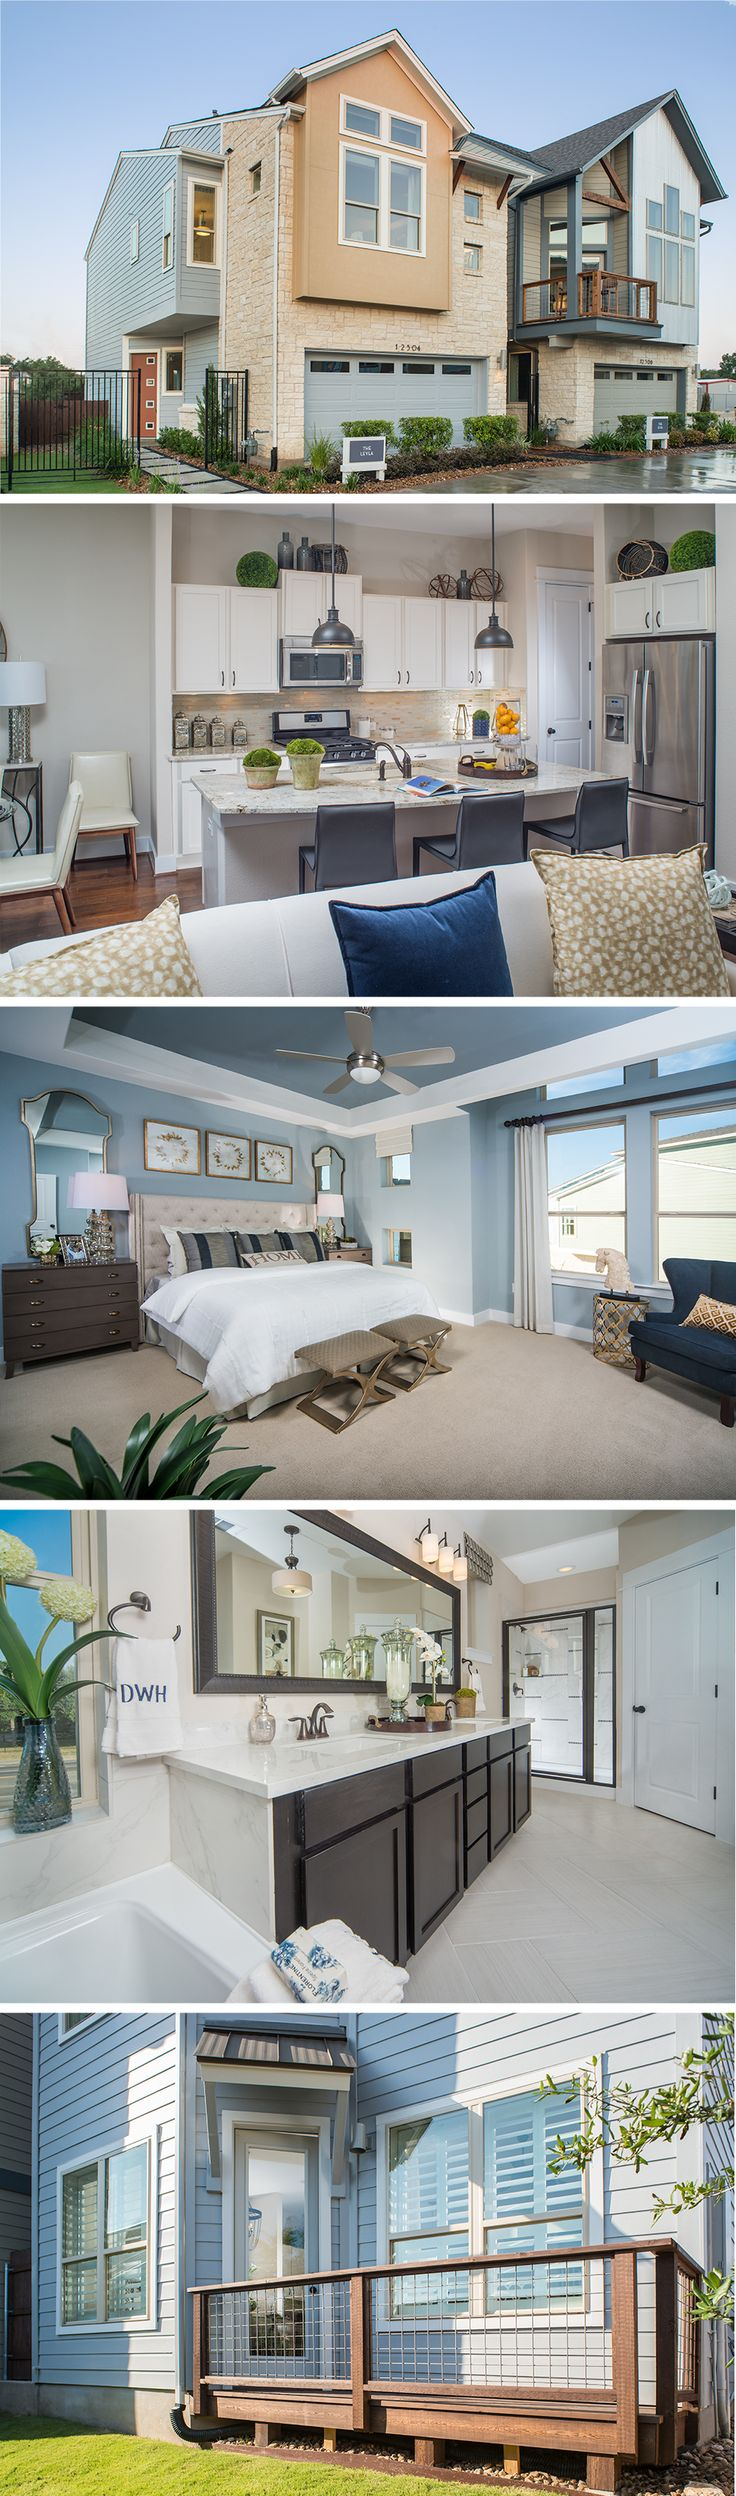 162 best Real Estate images on Pinterest